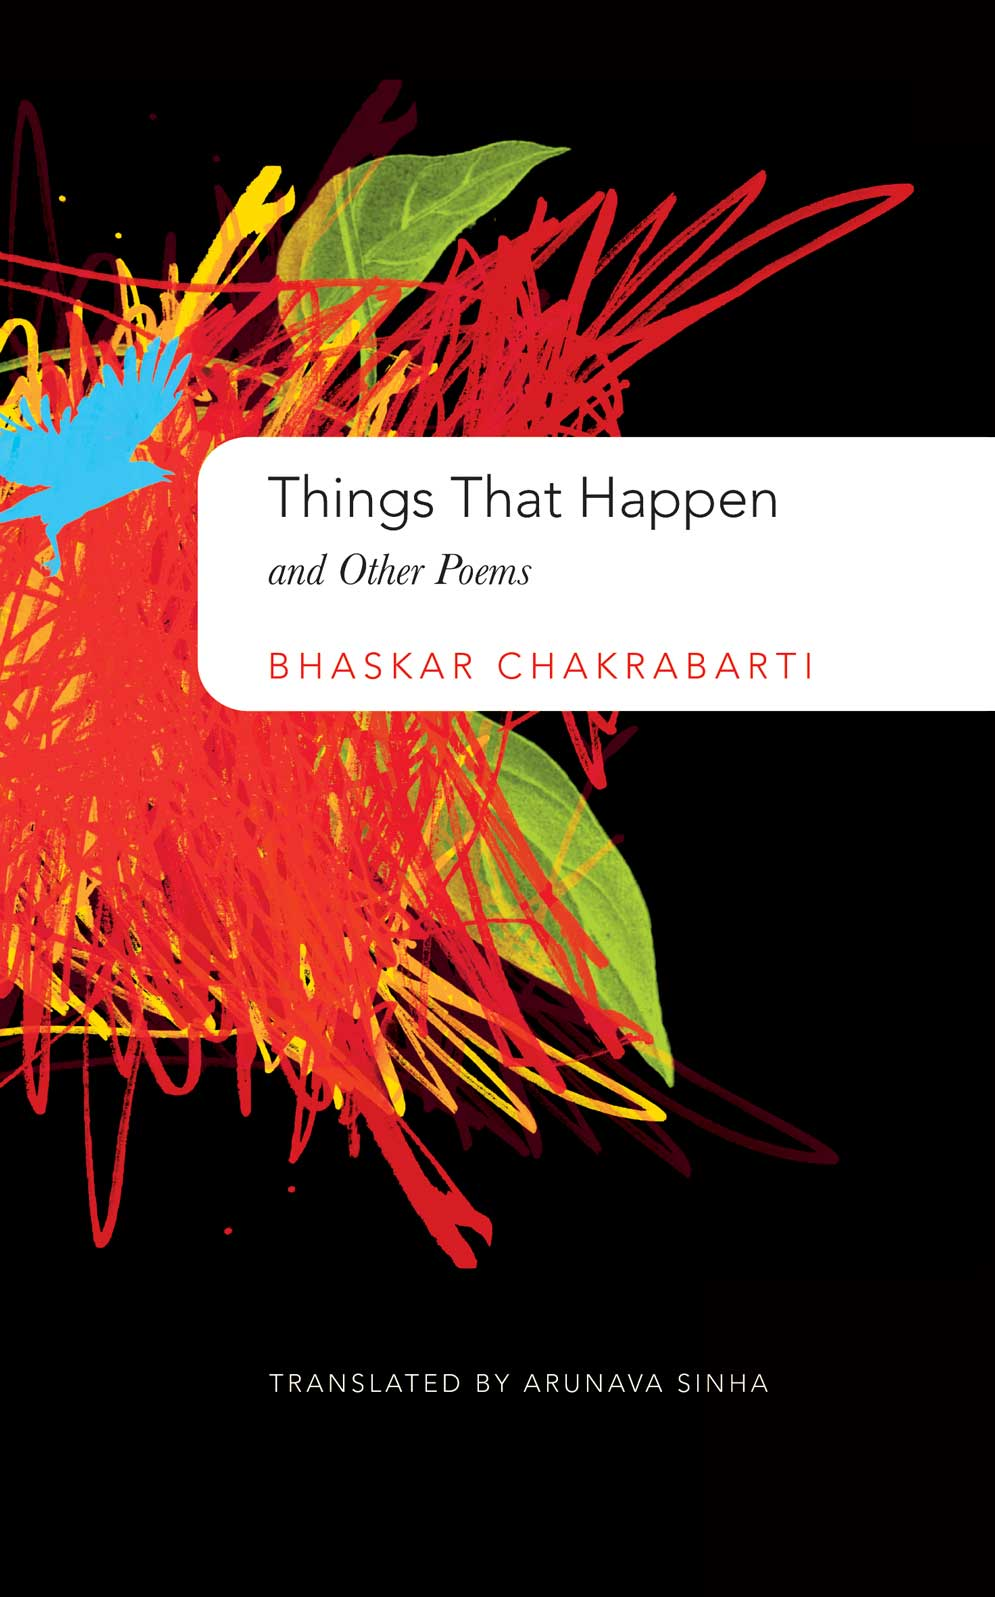 Things that Happen by Bhaskar Chakrabarti  |  Seagull Books